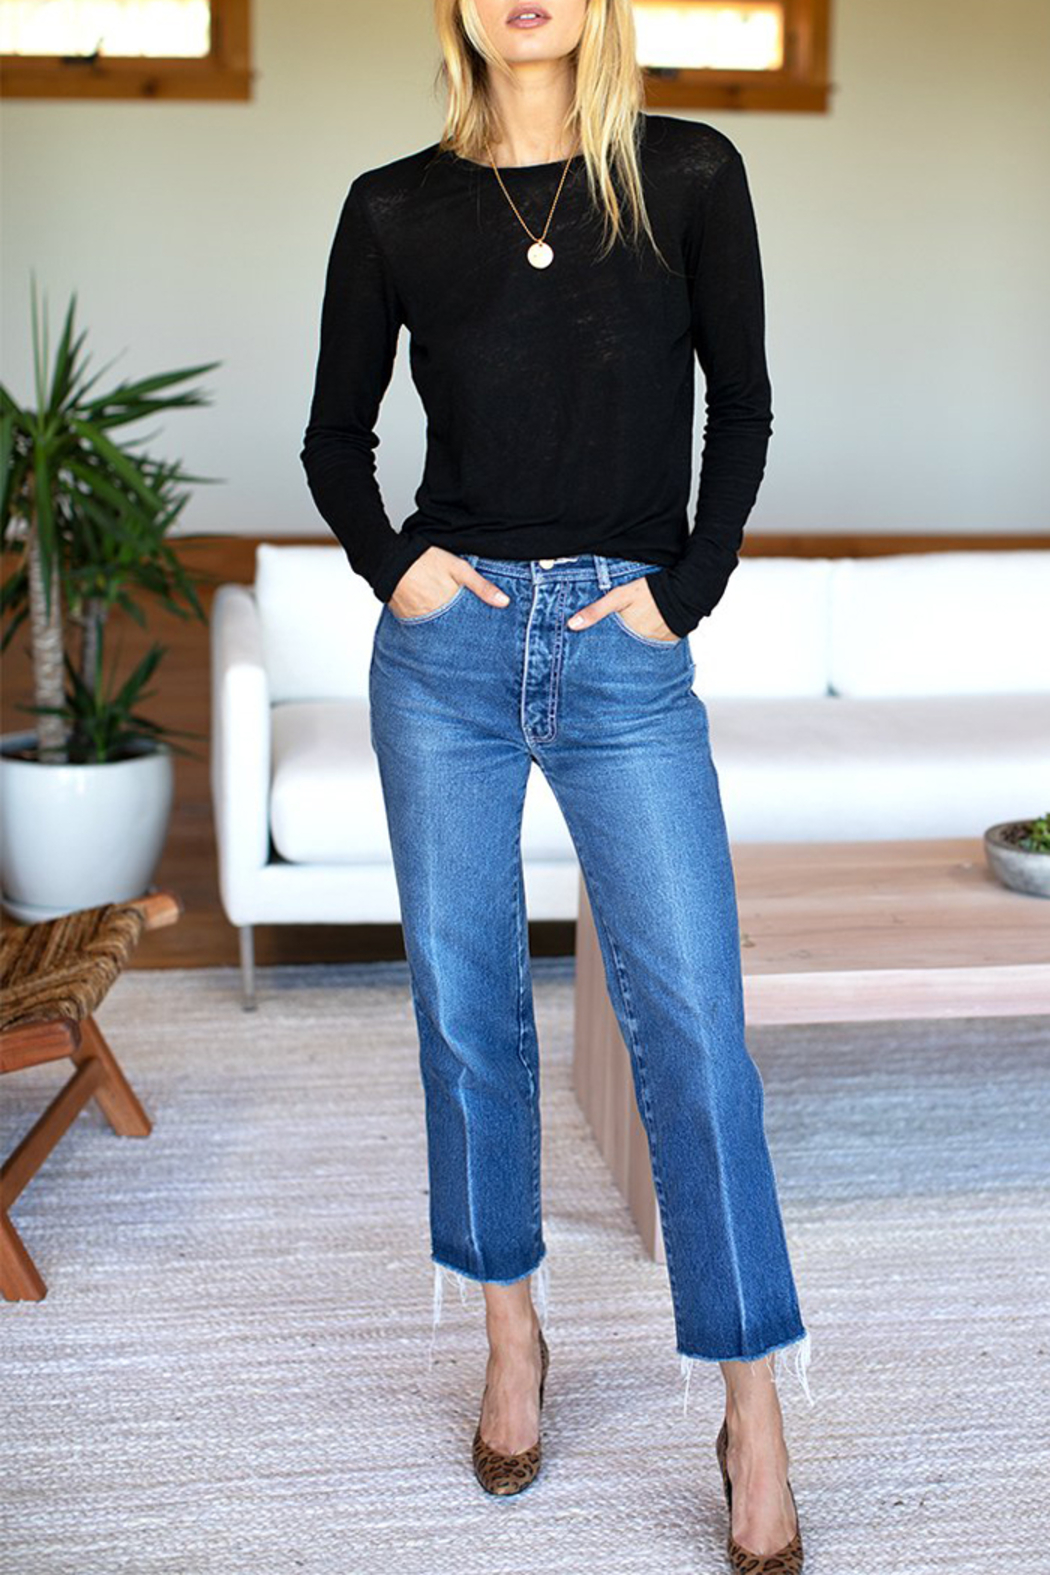 Emerson Fry Crew Neck Linen Long Sleeve Top - Front Full Image